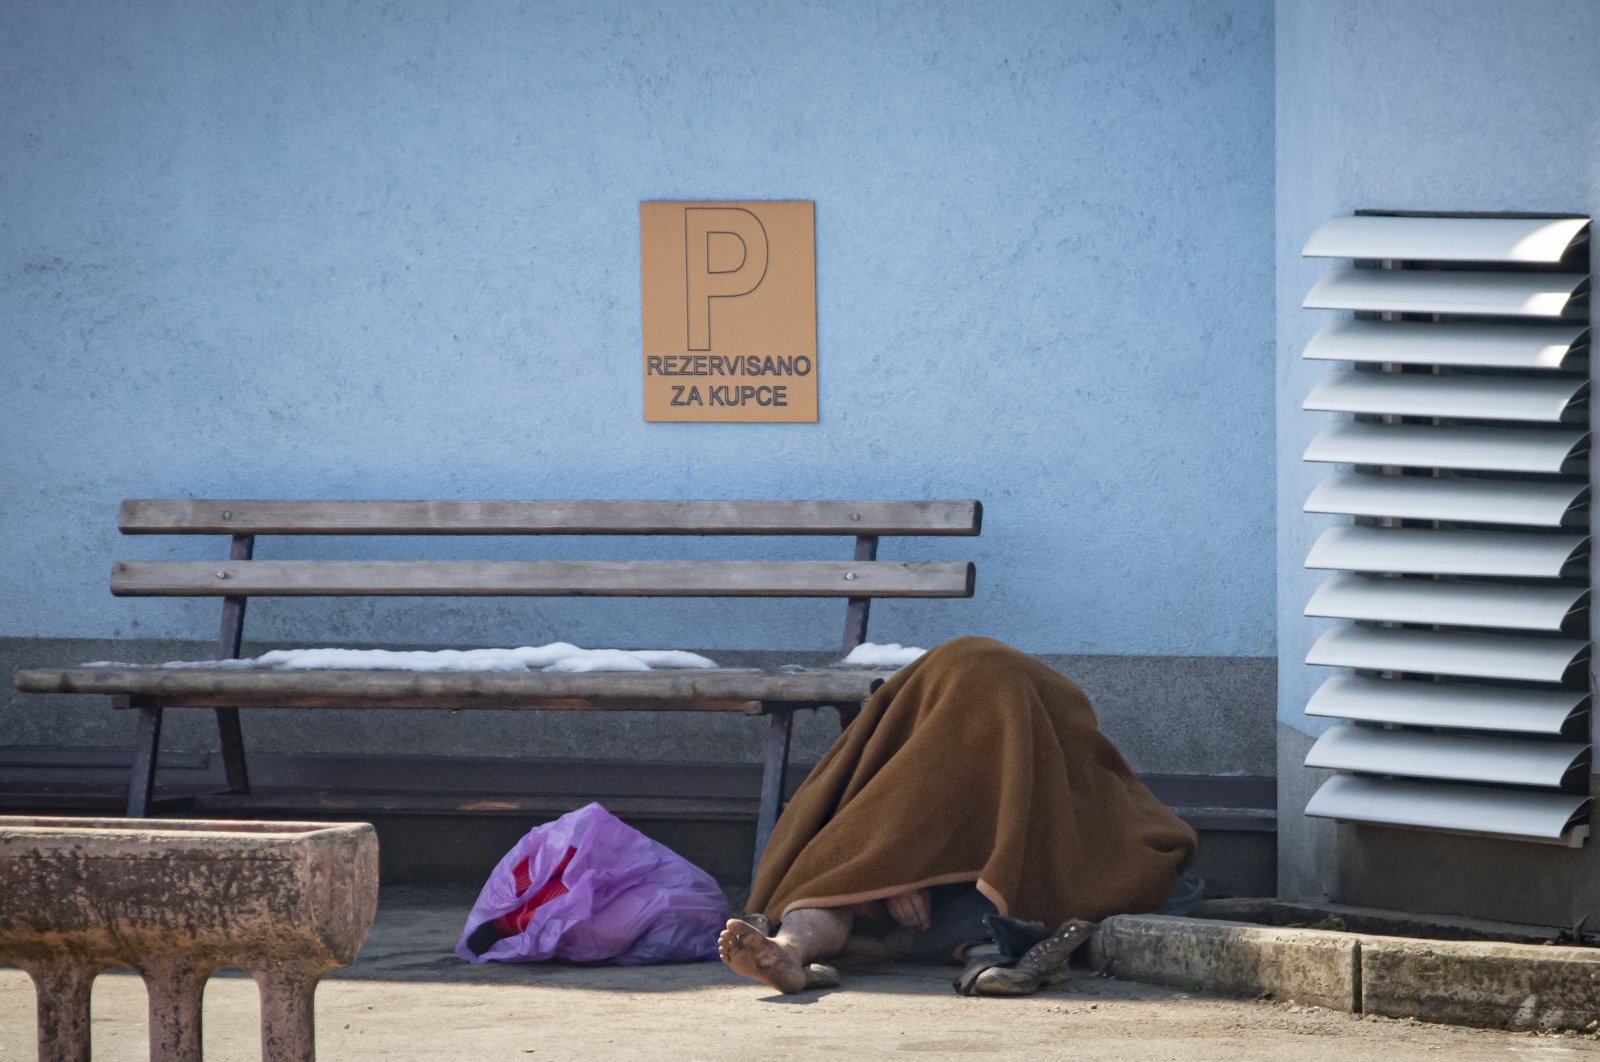 A migrant sits on the pavement to warm up outside the Miral camp, in Velika Kladusa, Bosnia-Herzegovina, April 7, 2021. (AP Photo)